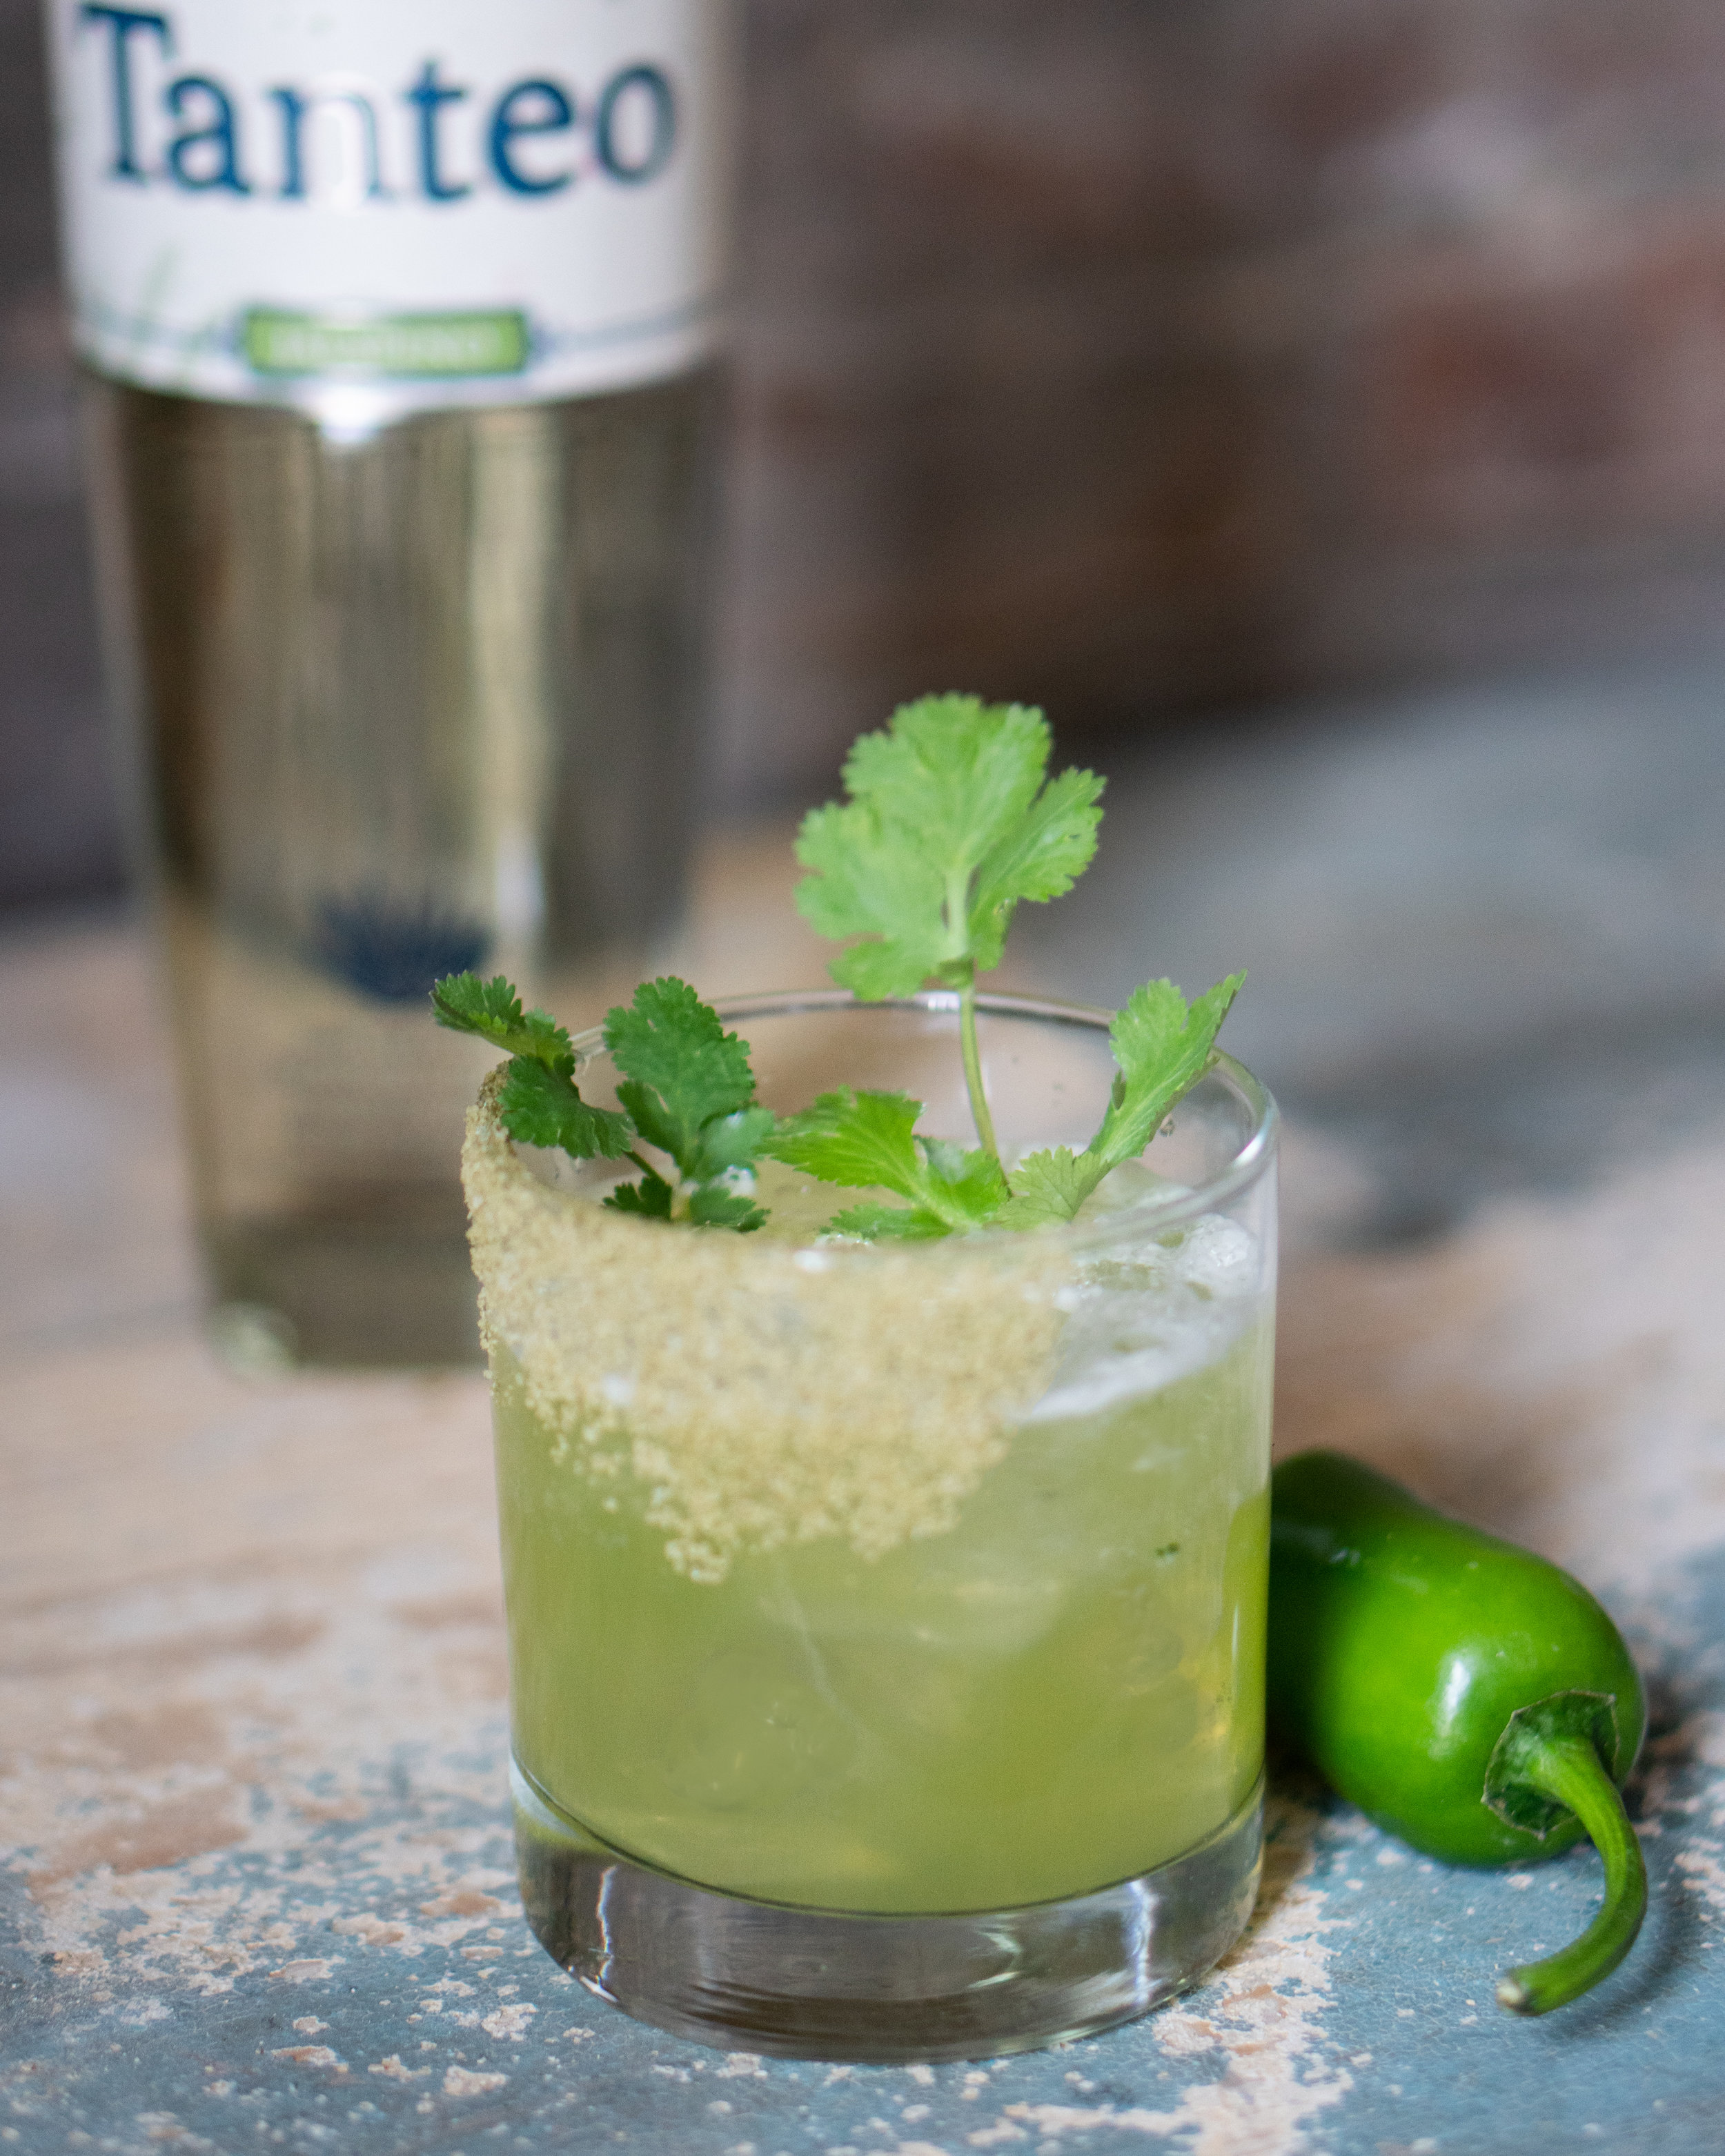 Recipe:    2 oz. Tanteo Jalapeño Tequila    1 oz. Fresh Lime Juice    ¾ oz. Agave Nectar    ½ oz. Muddled Cilantro & Jalapeño Peppers    Rimmed with Tanteo Jalapeño Salt